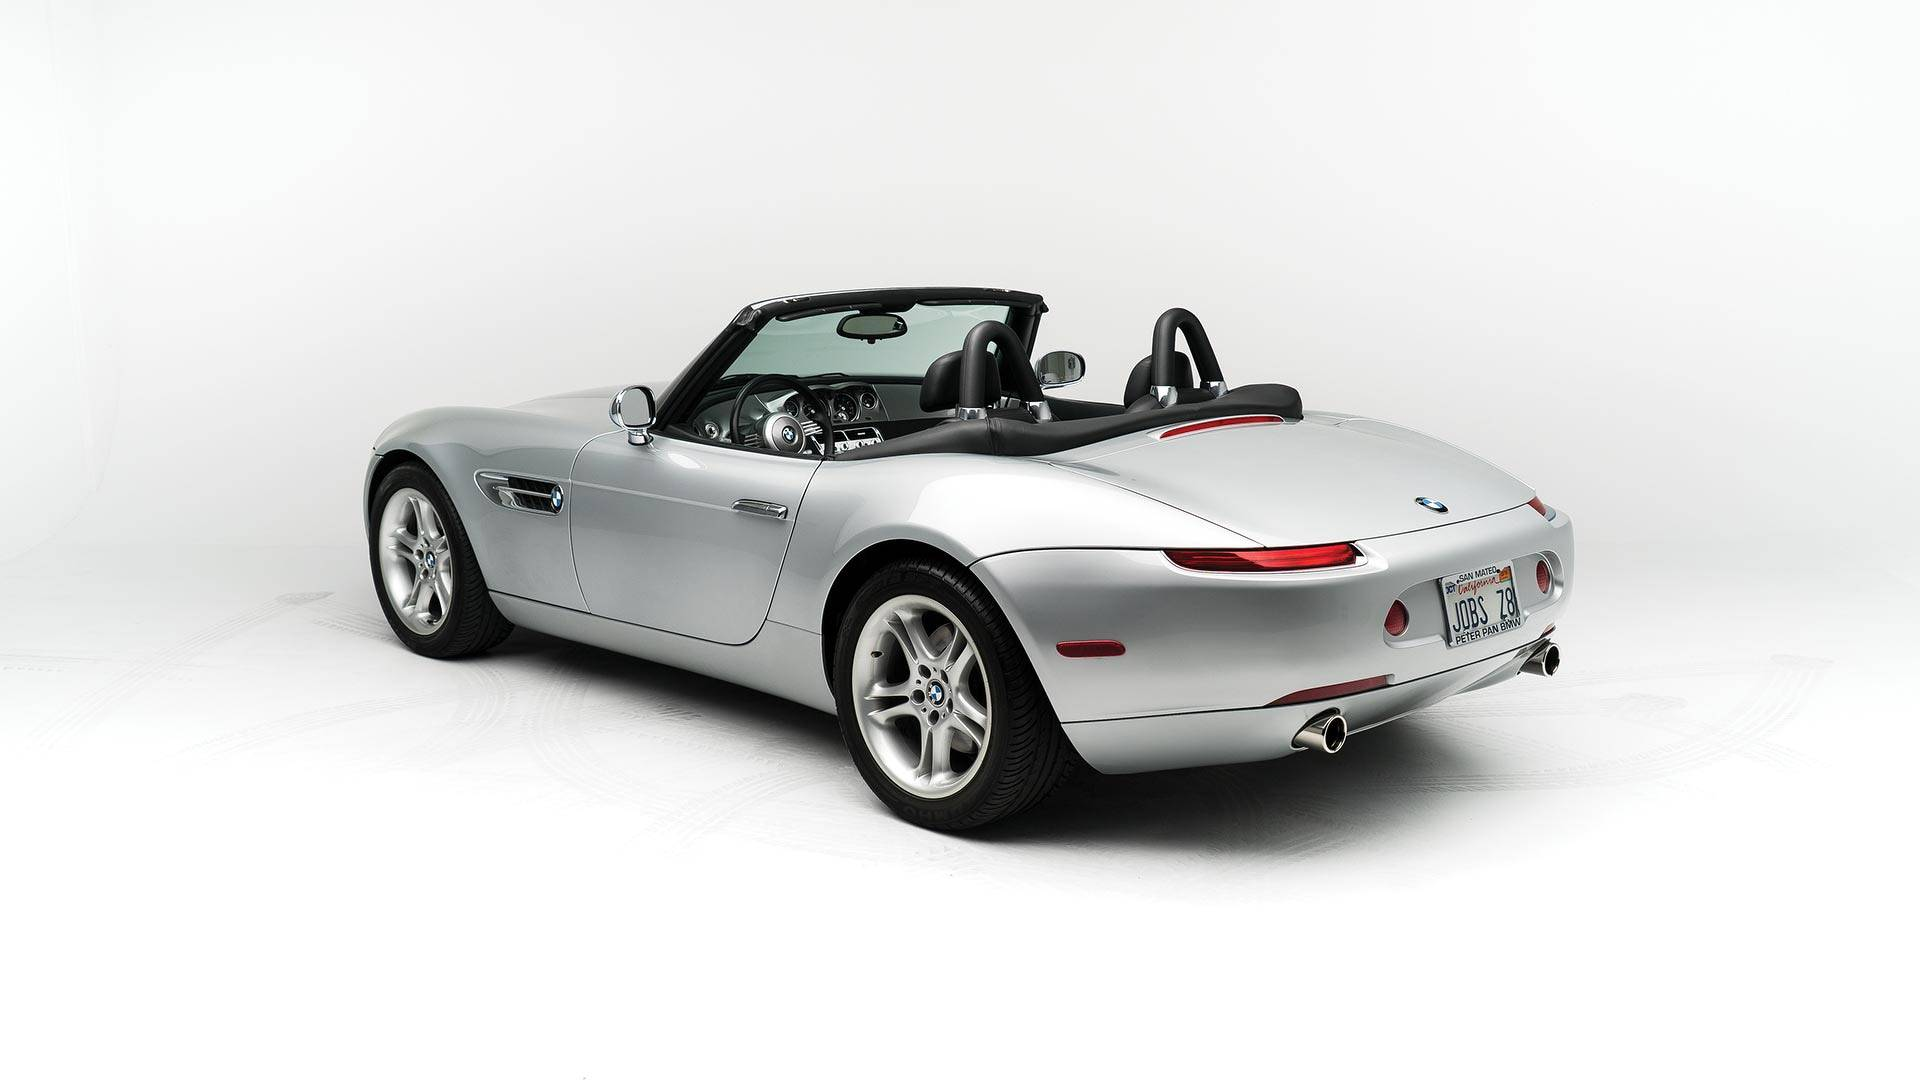 Steve_Jobs_2000_BMW_Z8_auction_0004